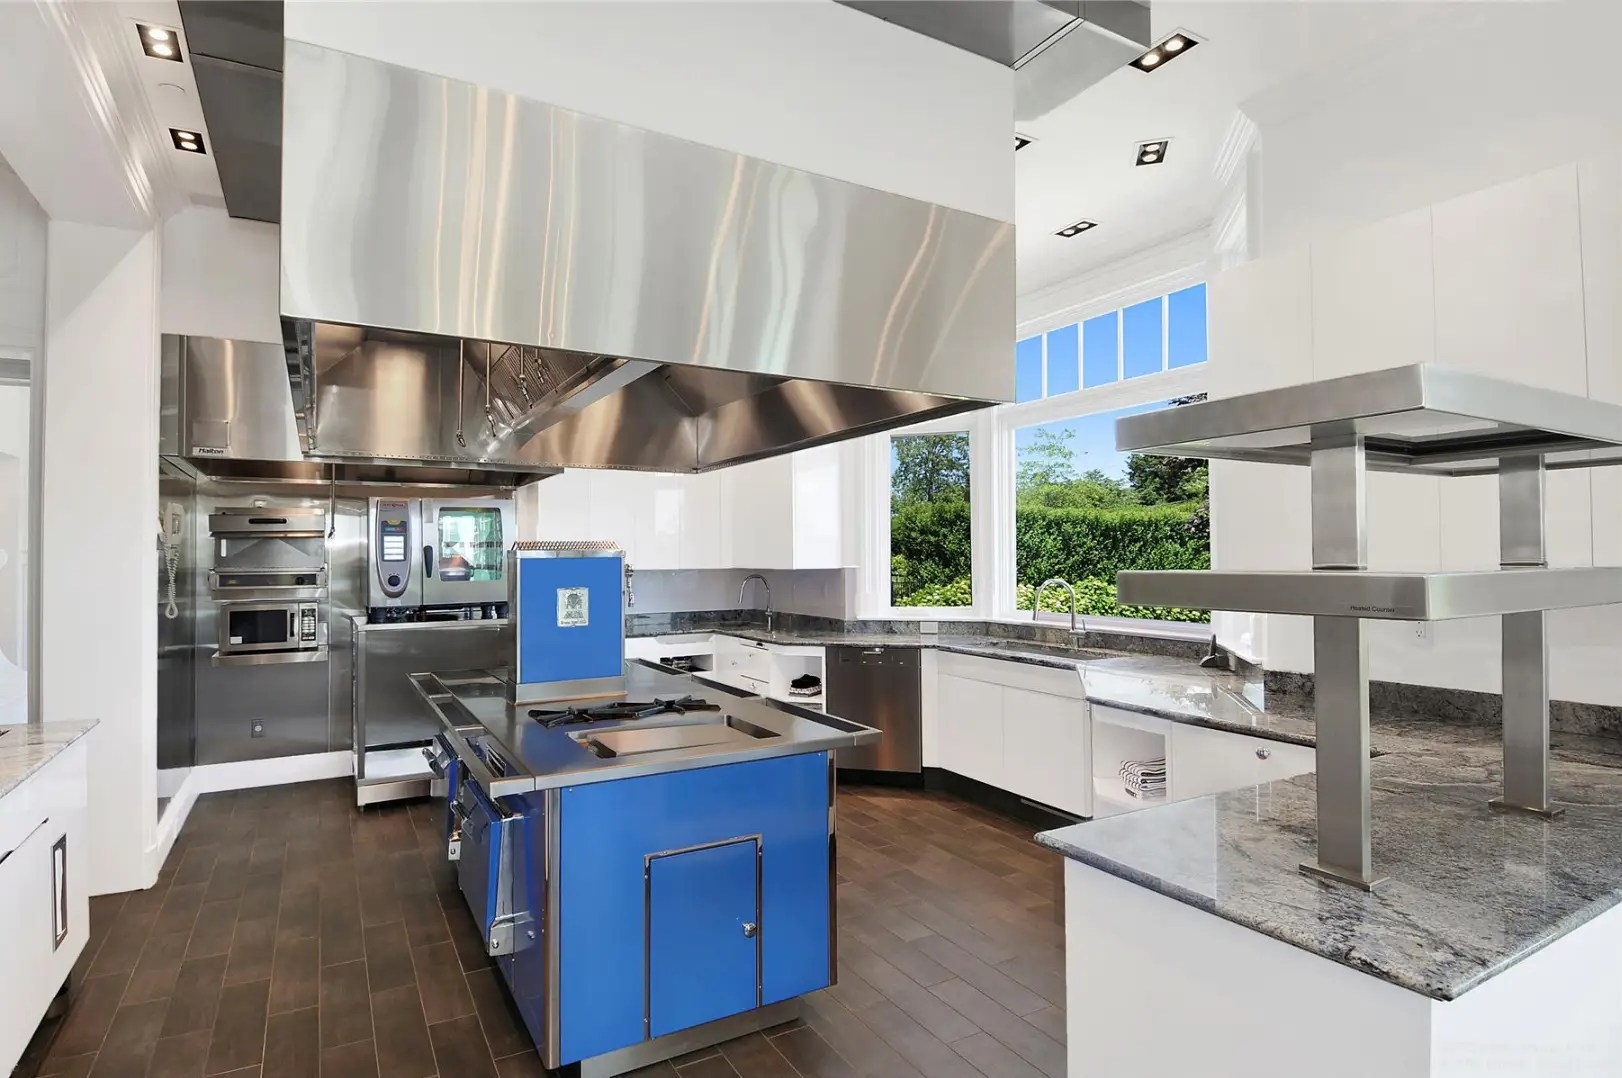 This upstairs kitchen was designed by world-renowned designer Mark Stech-Novak.